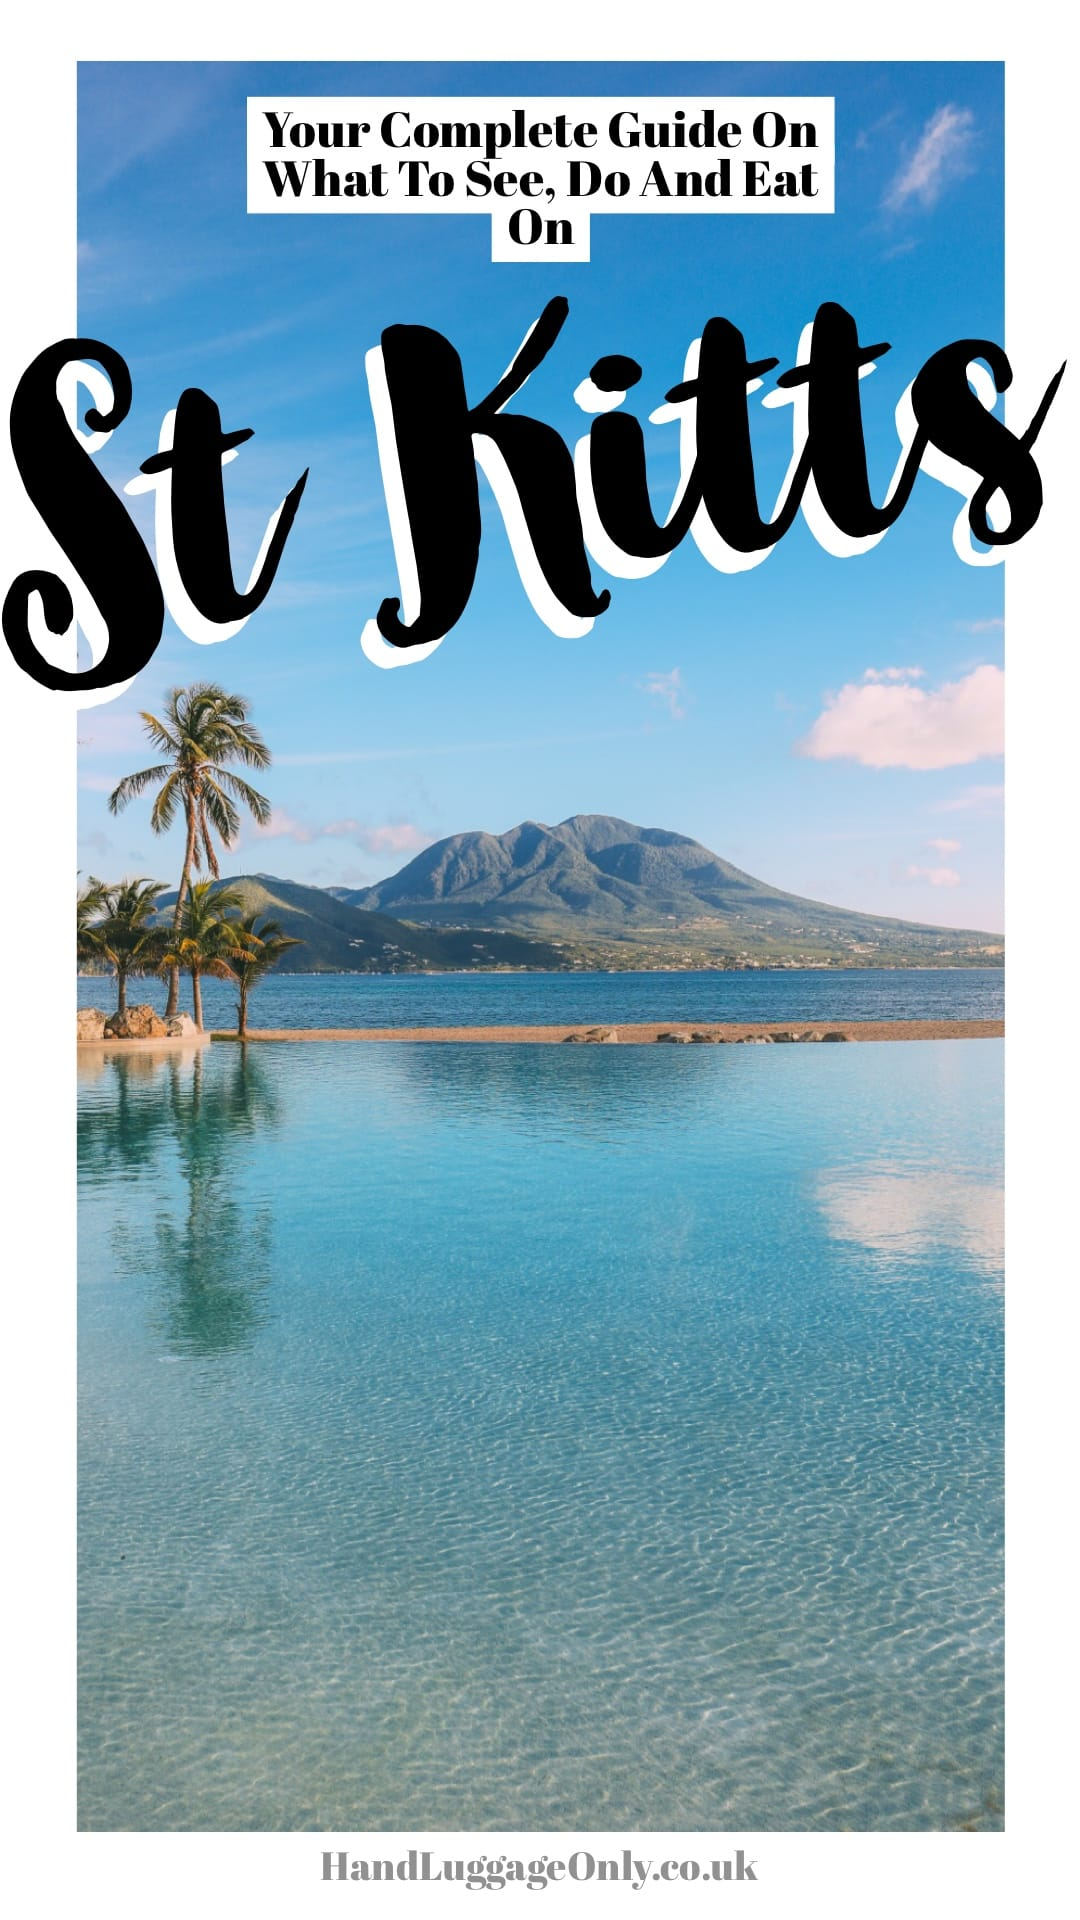 Things To See In St Kitts